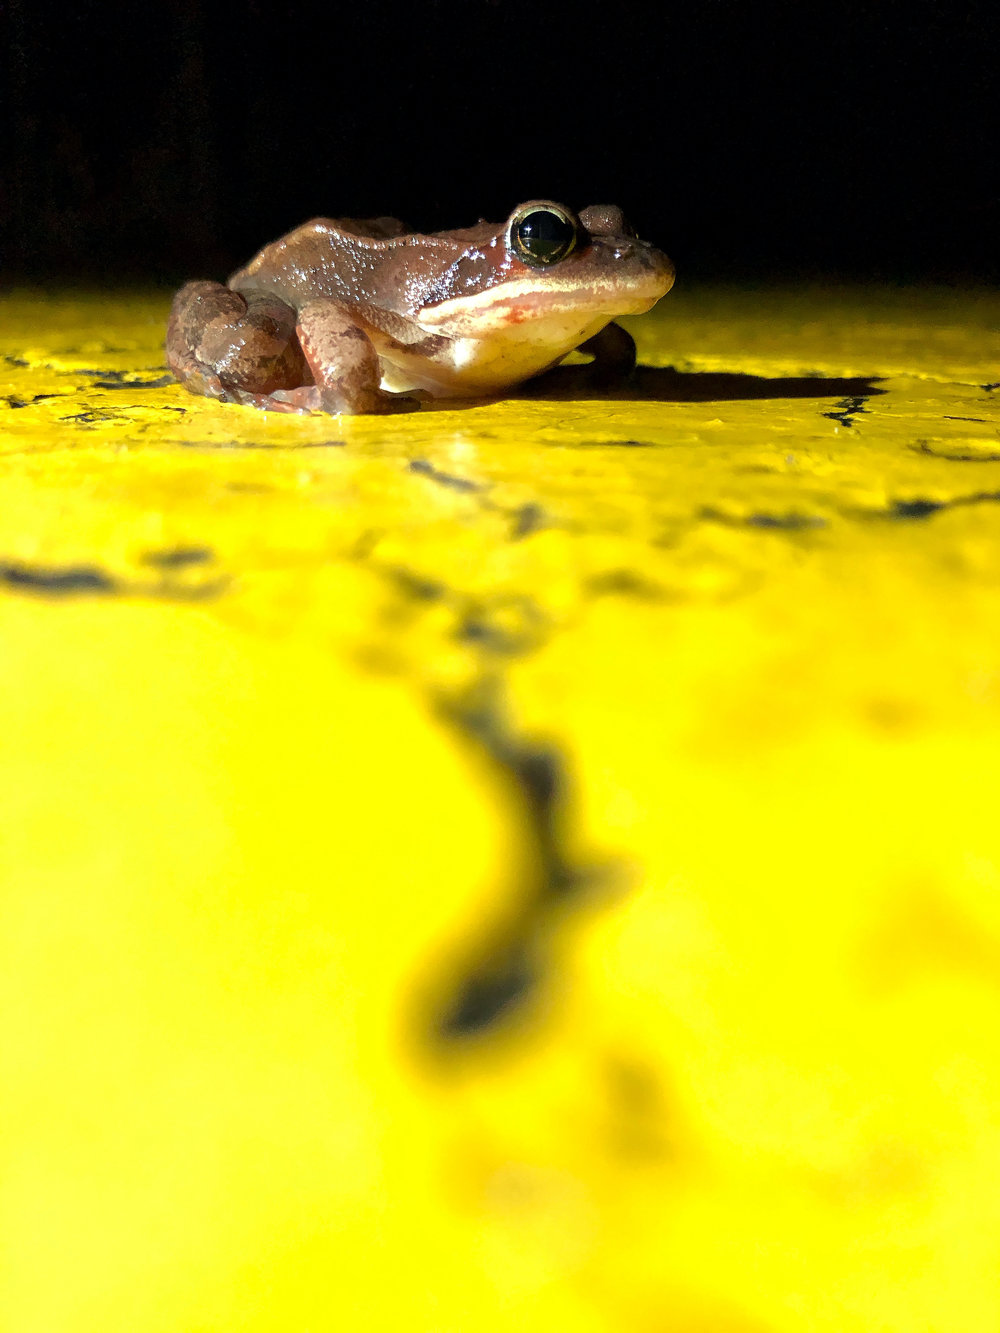 A wood frog pauses on the double yellow line before migrating back to the woods during a warm, spring night. (Anna Miller/Animalia Podcast)